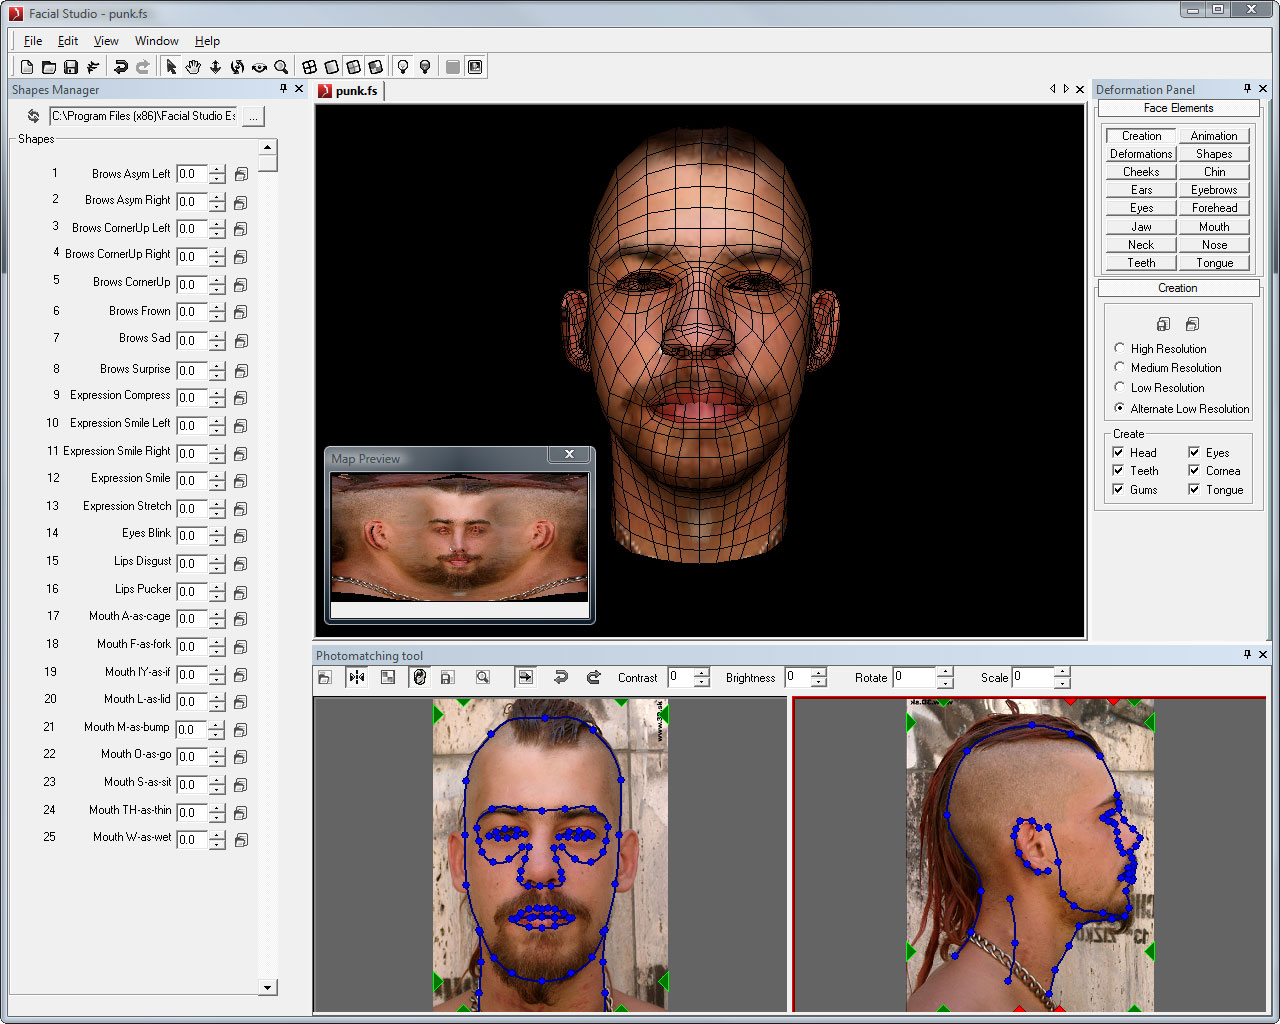 Facial Studio for Windows Image